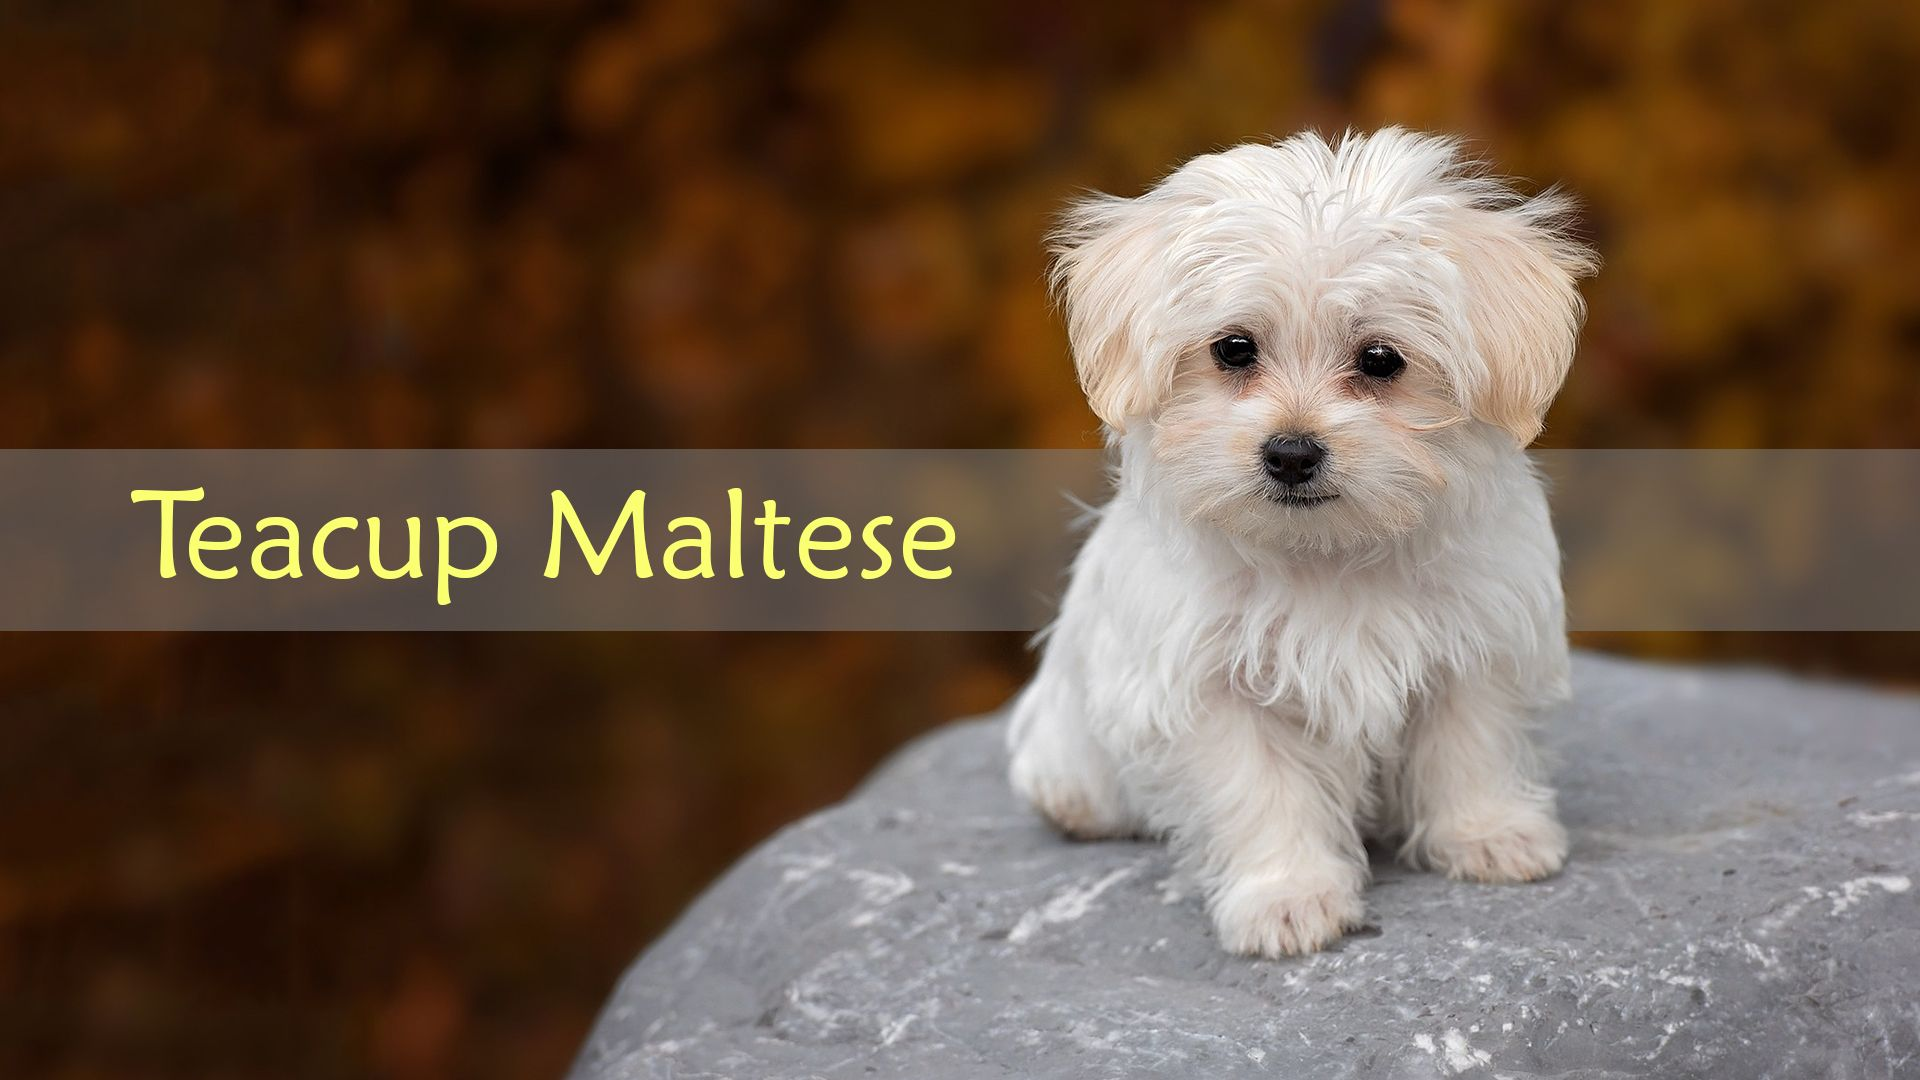 Teacup Maltese The Cutest Dog Breed Facts Teacup Maltese